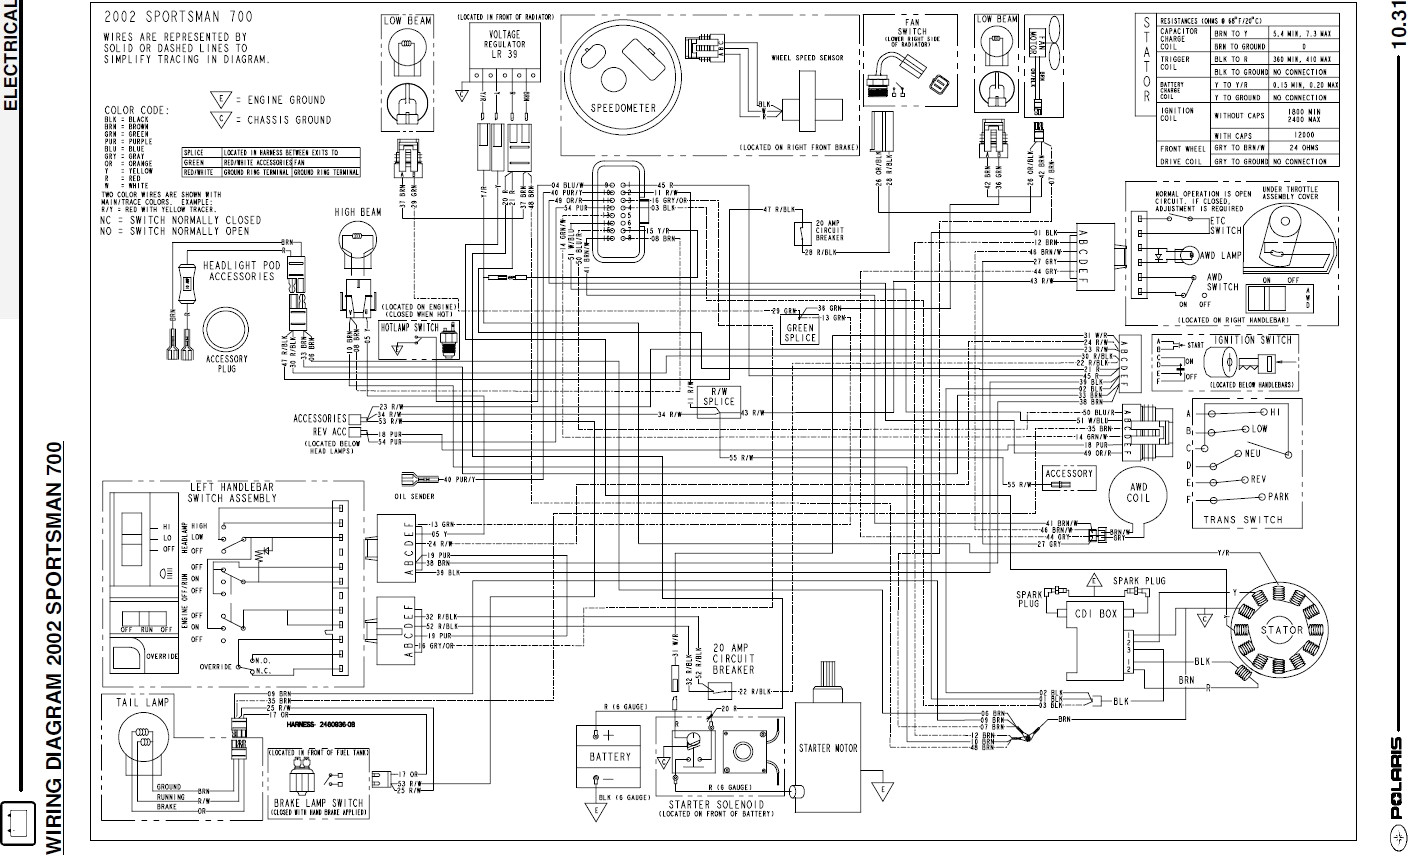 2010 polaris ranger wiring diagram polaris ranger wiring schematic polaris ranger fuel pump wiring diagram collection